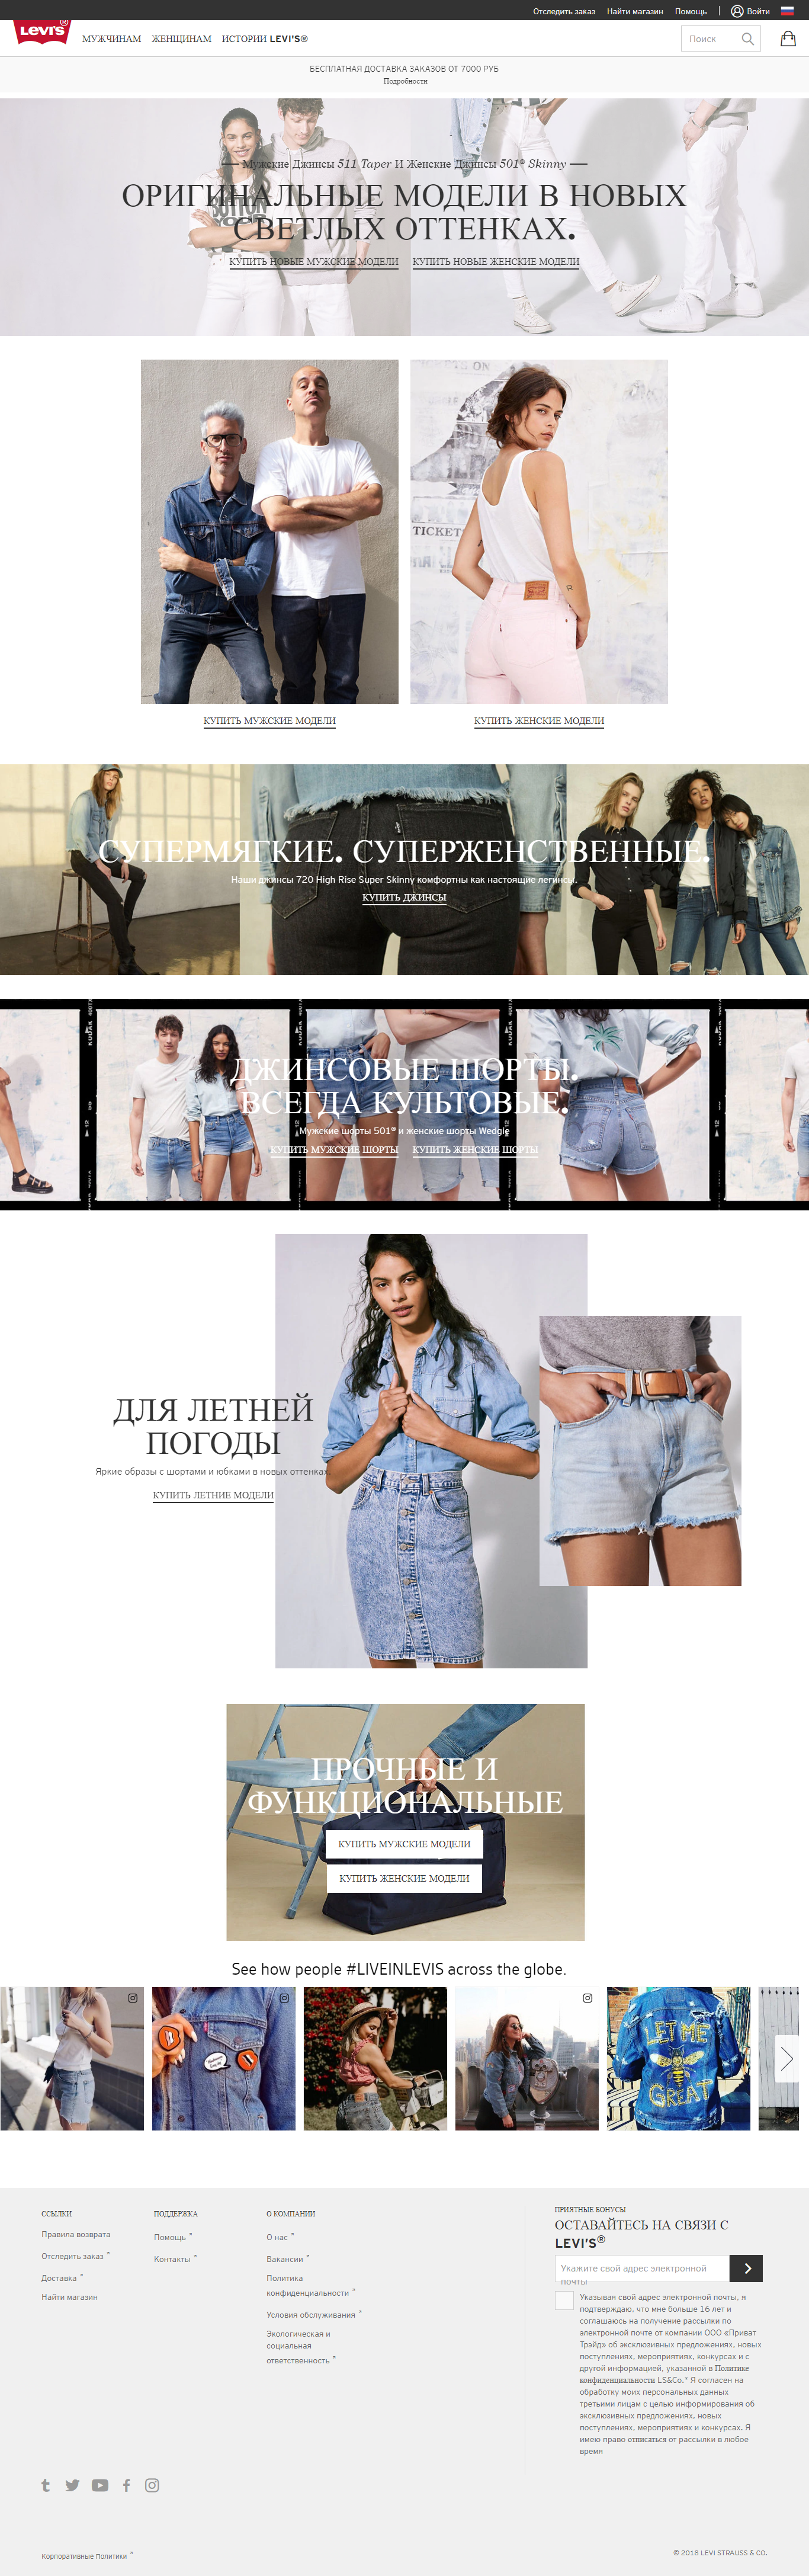 Levi's website (Russia)  Page captured 06/09/2018